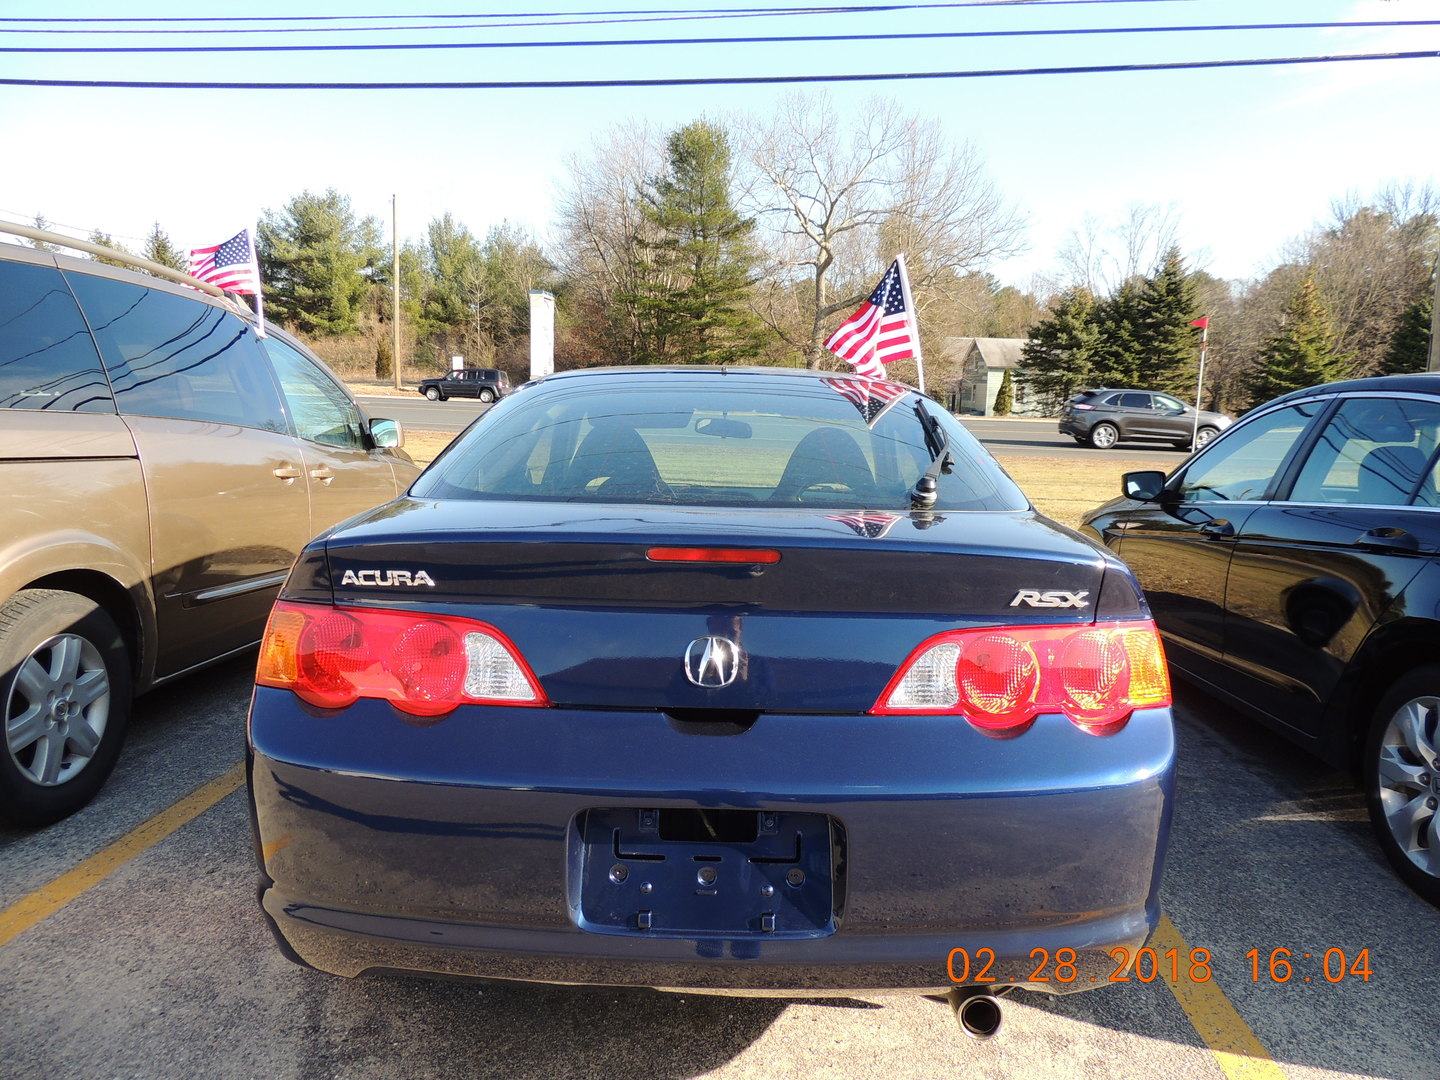 Featured 2003 Acura RSX 3dr Sport Cpe Auto. $4,499